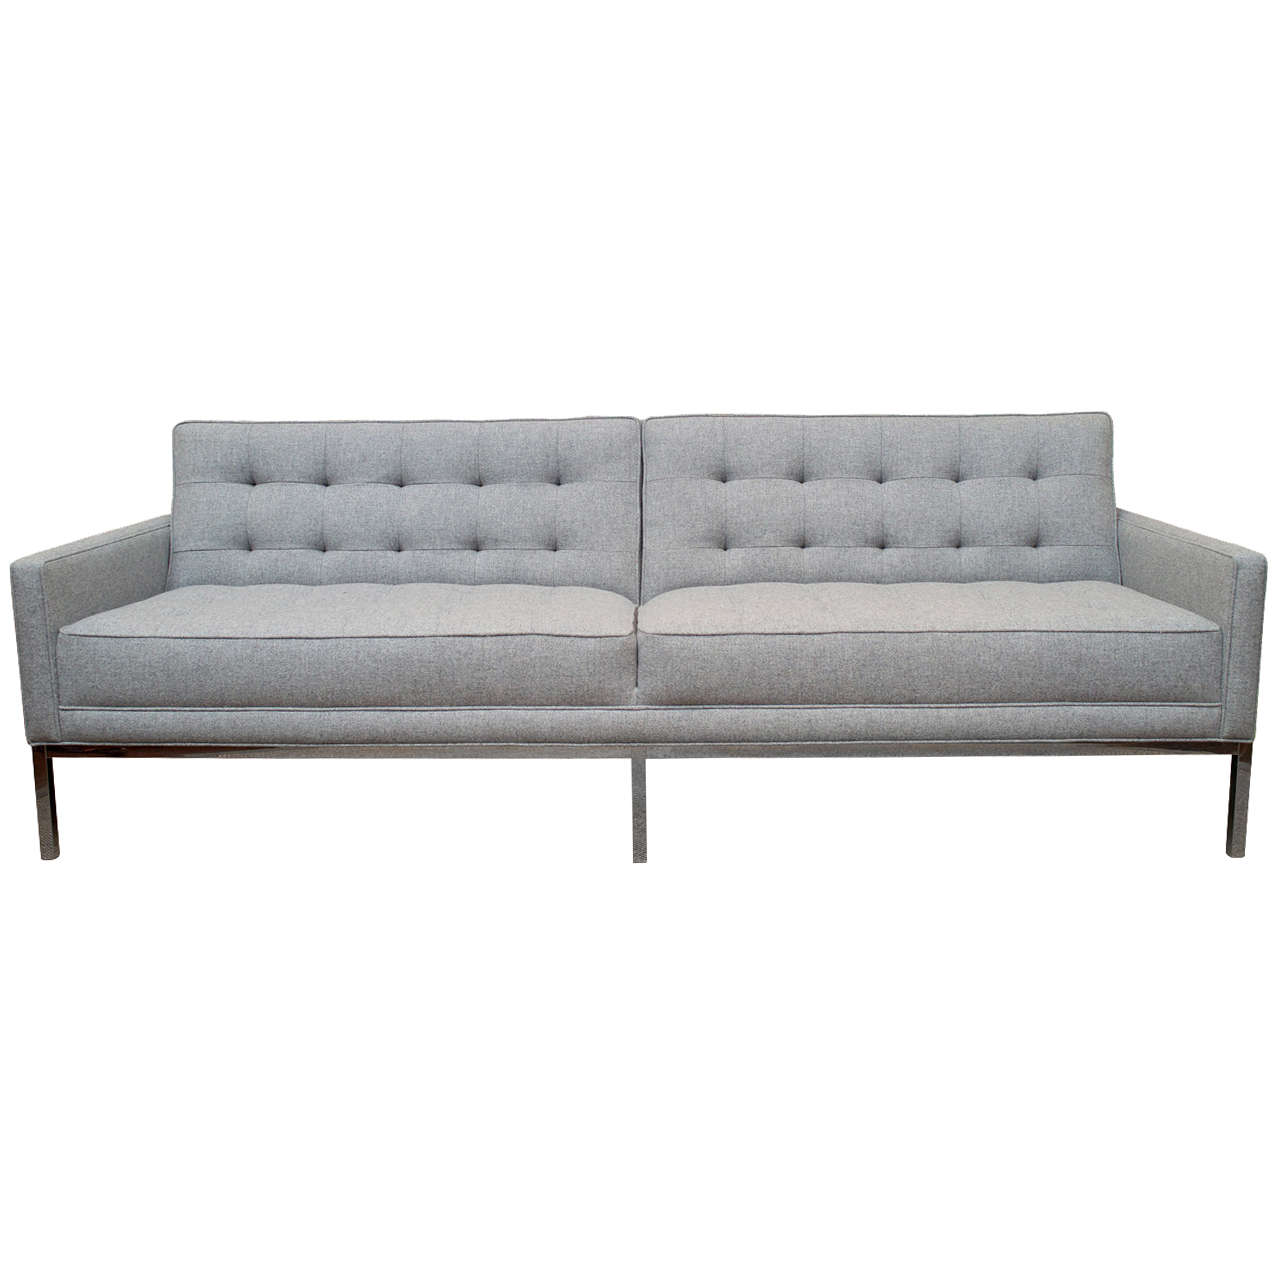 Captivating Mid Century Modern Steel Case Sofa For Sale